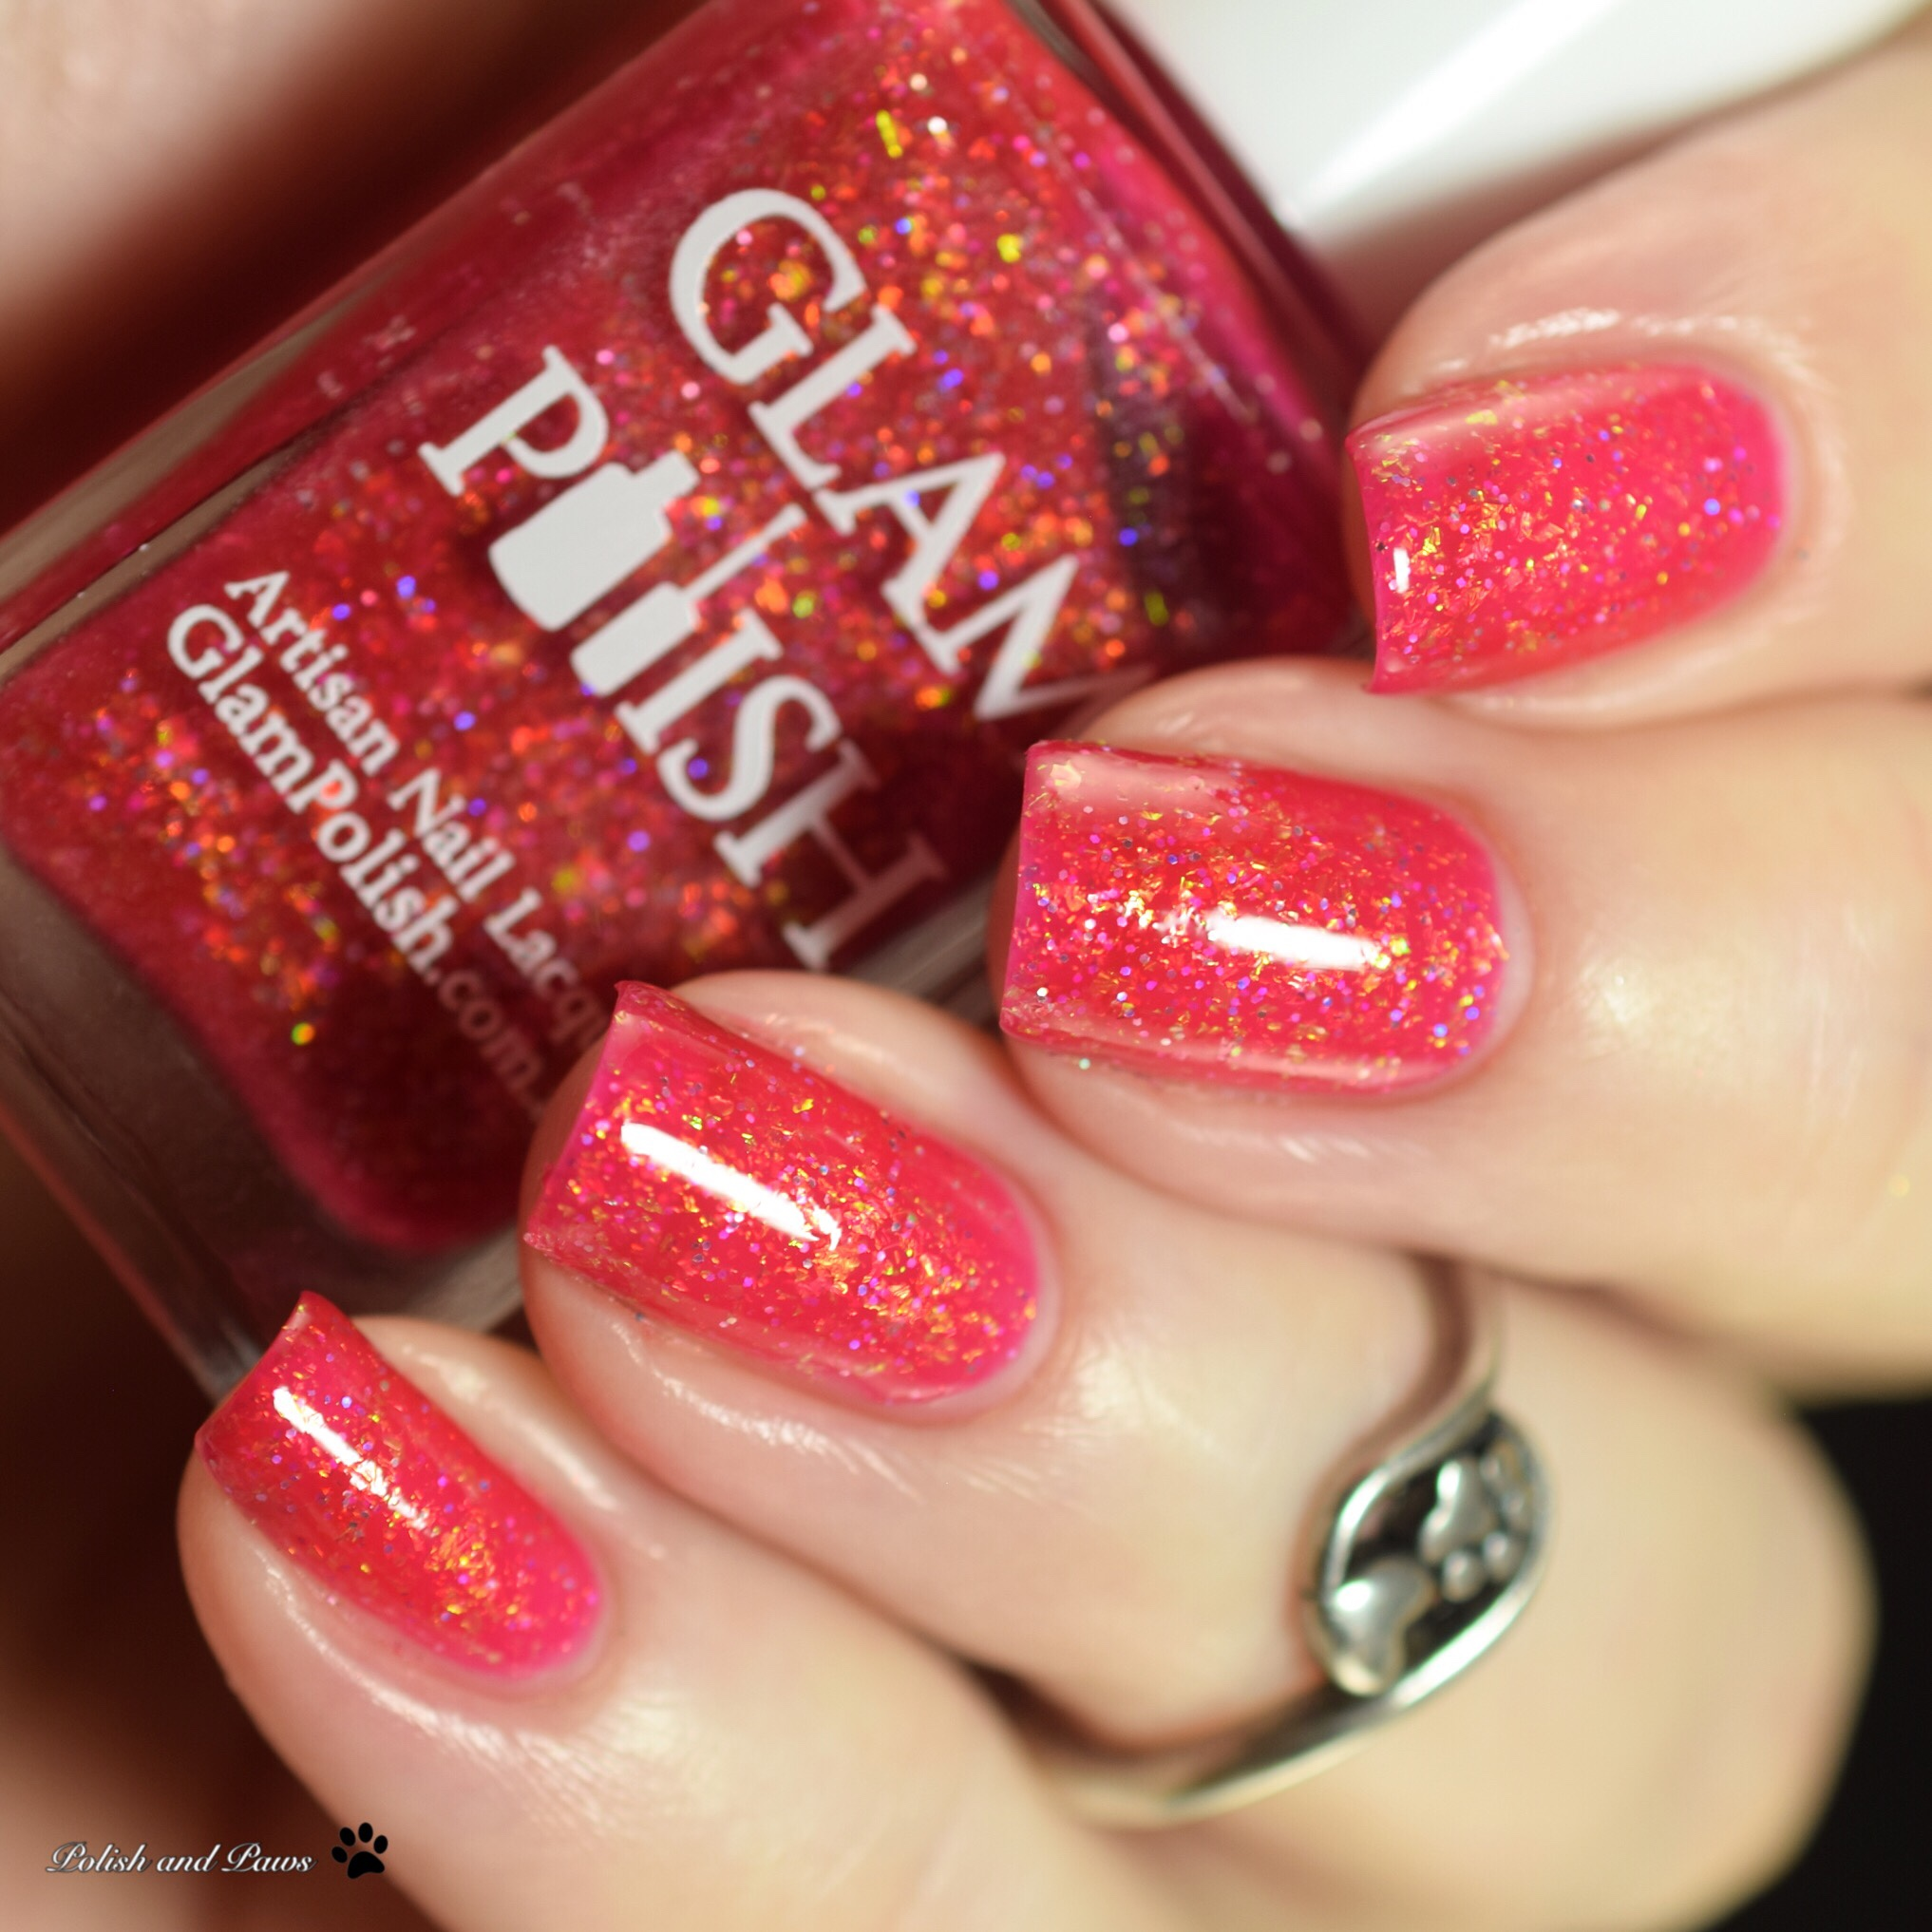 Glam Polish High Inquisitor